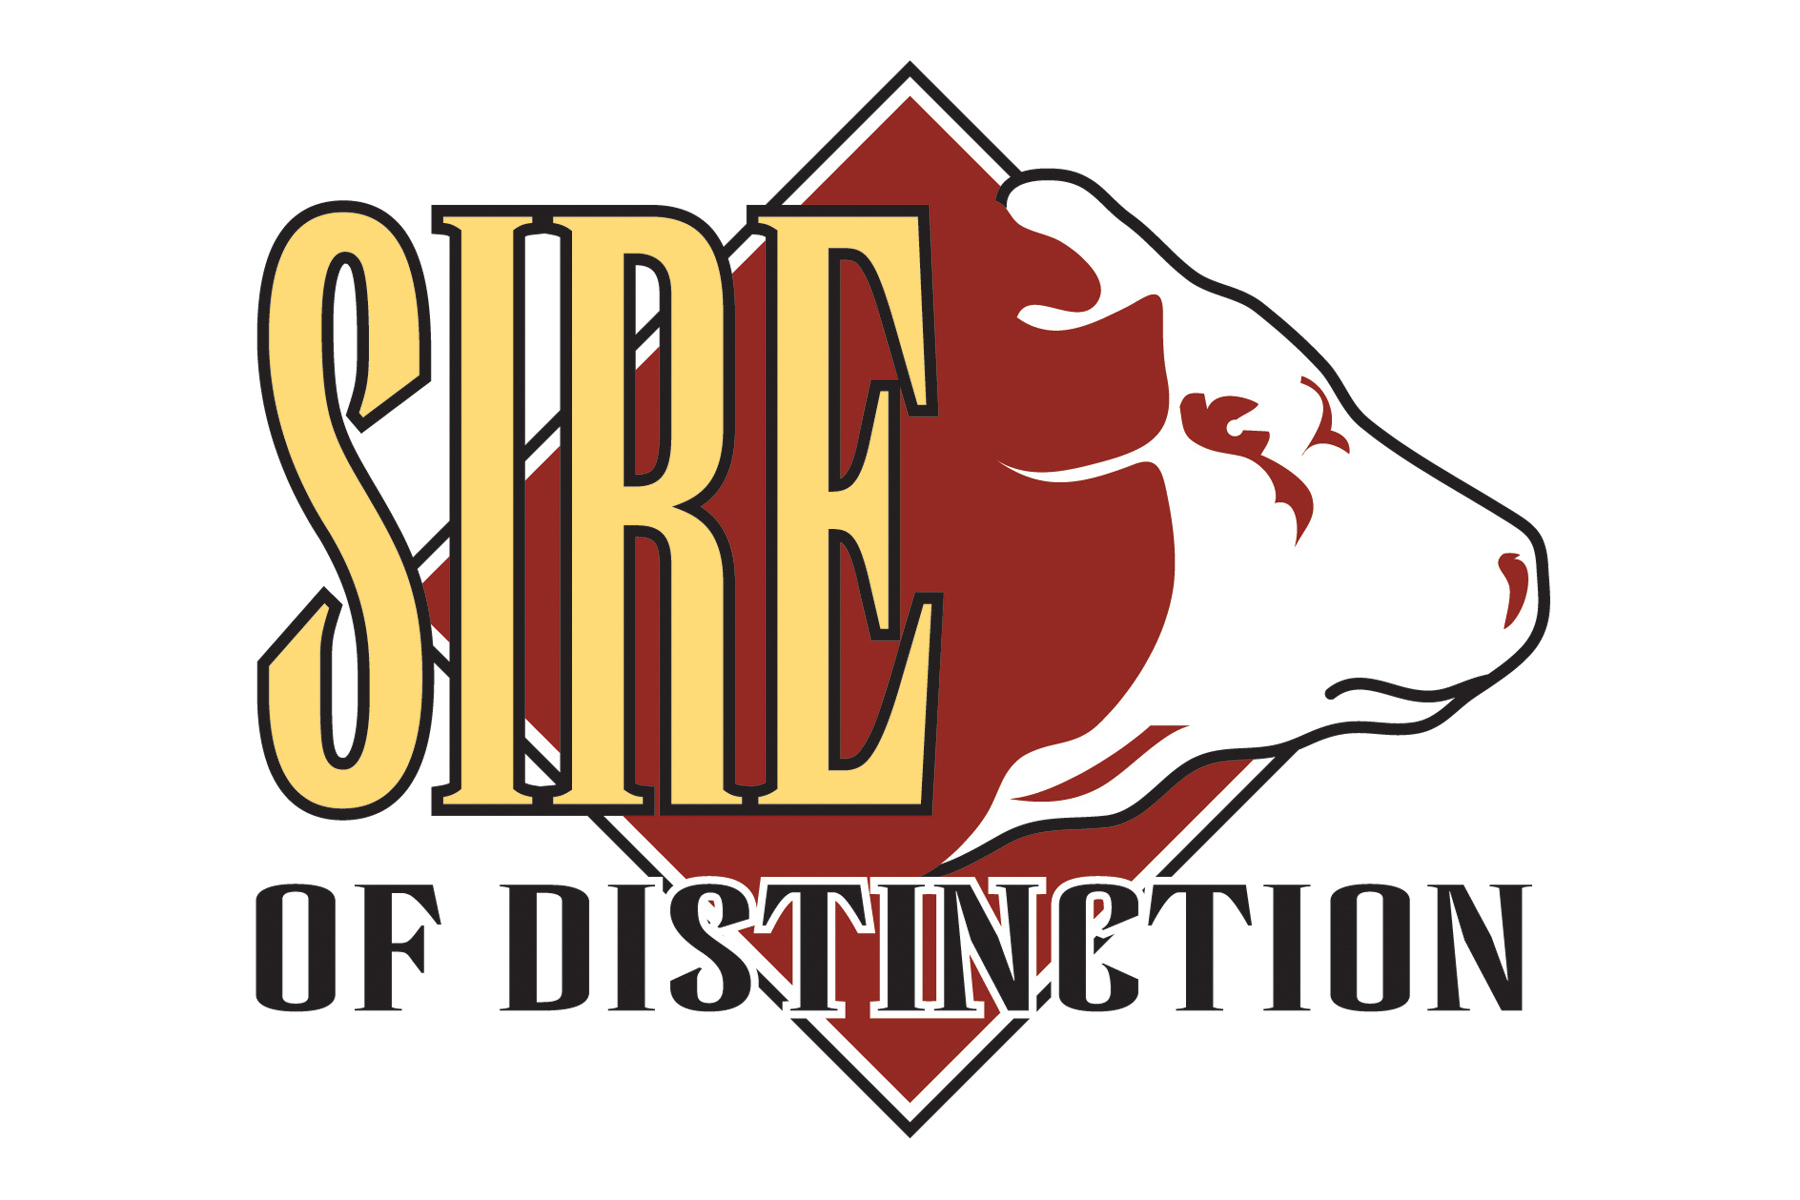 Sire of Distinction